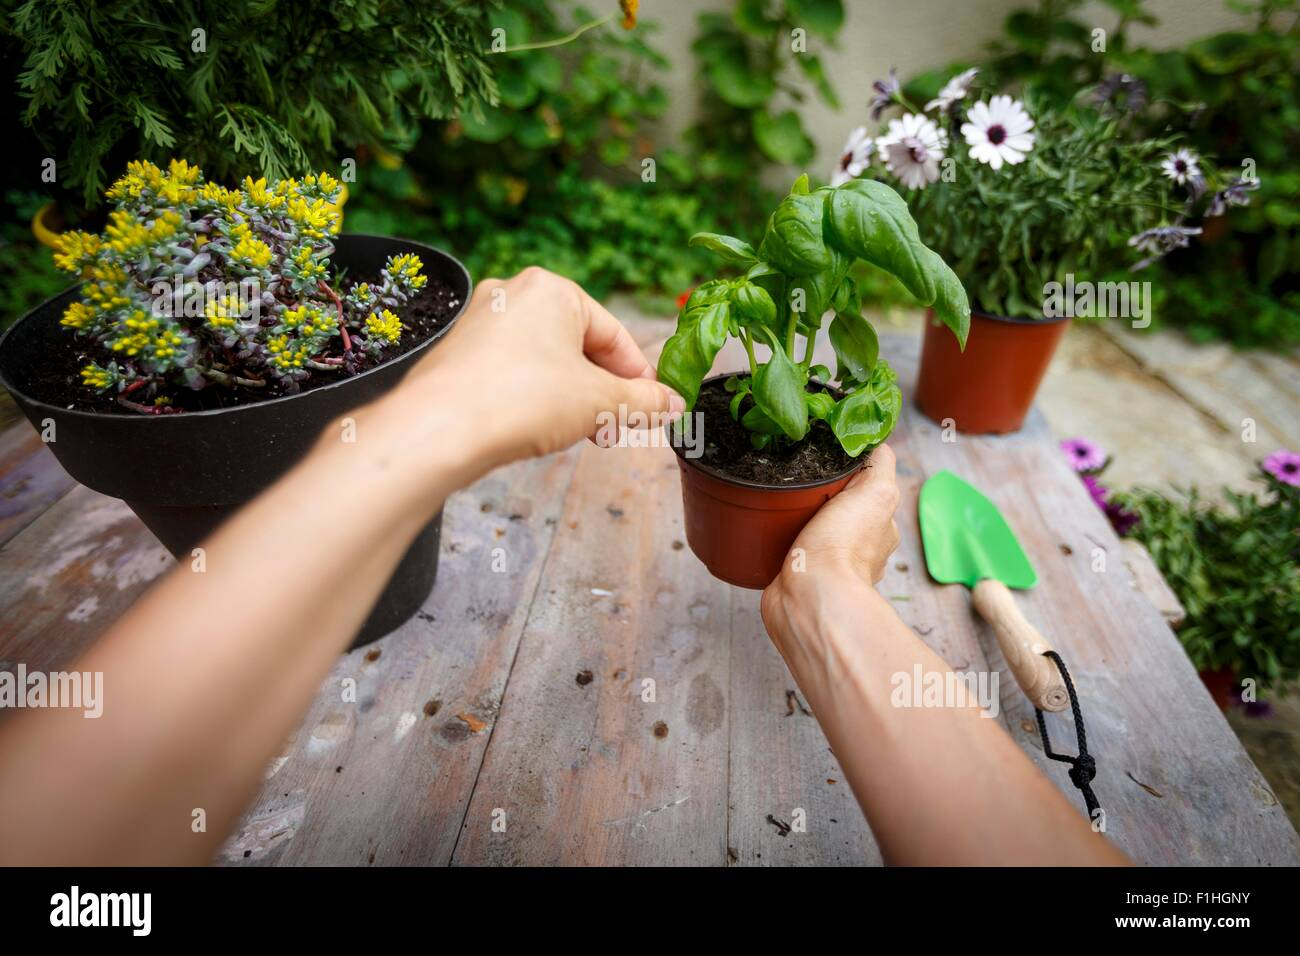 Point of view shot of hands holding basil plant - Stock Image